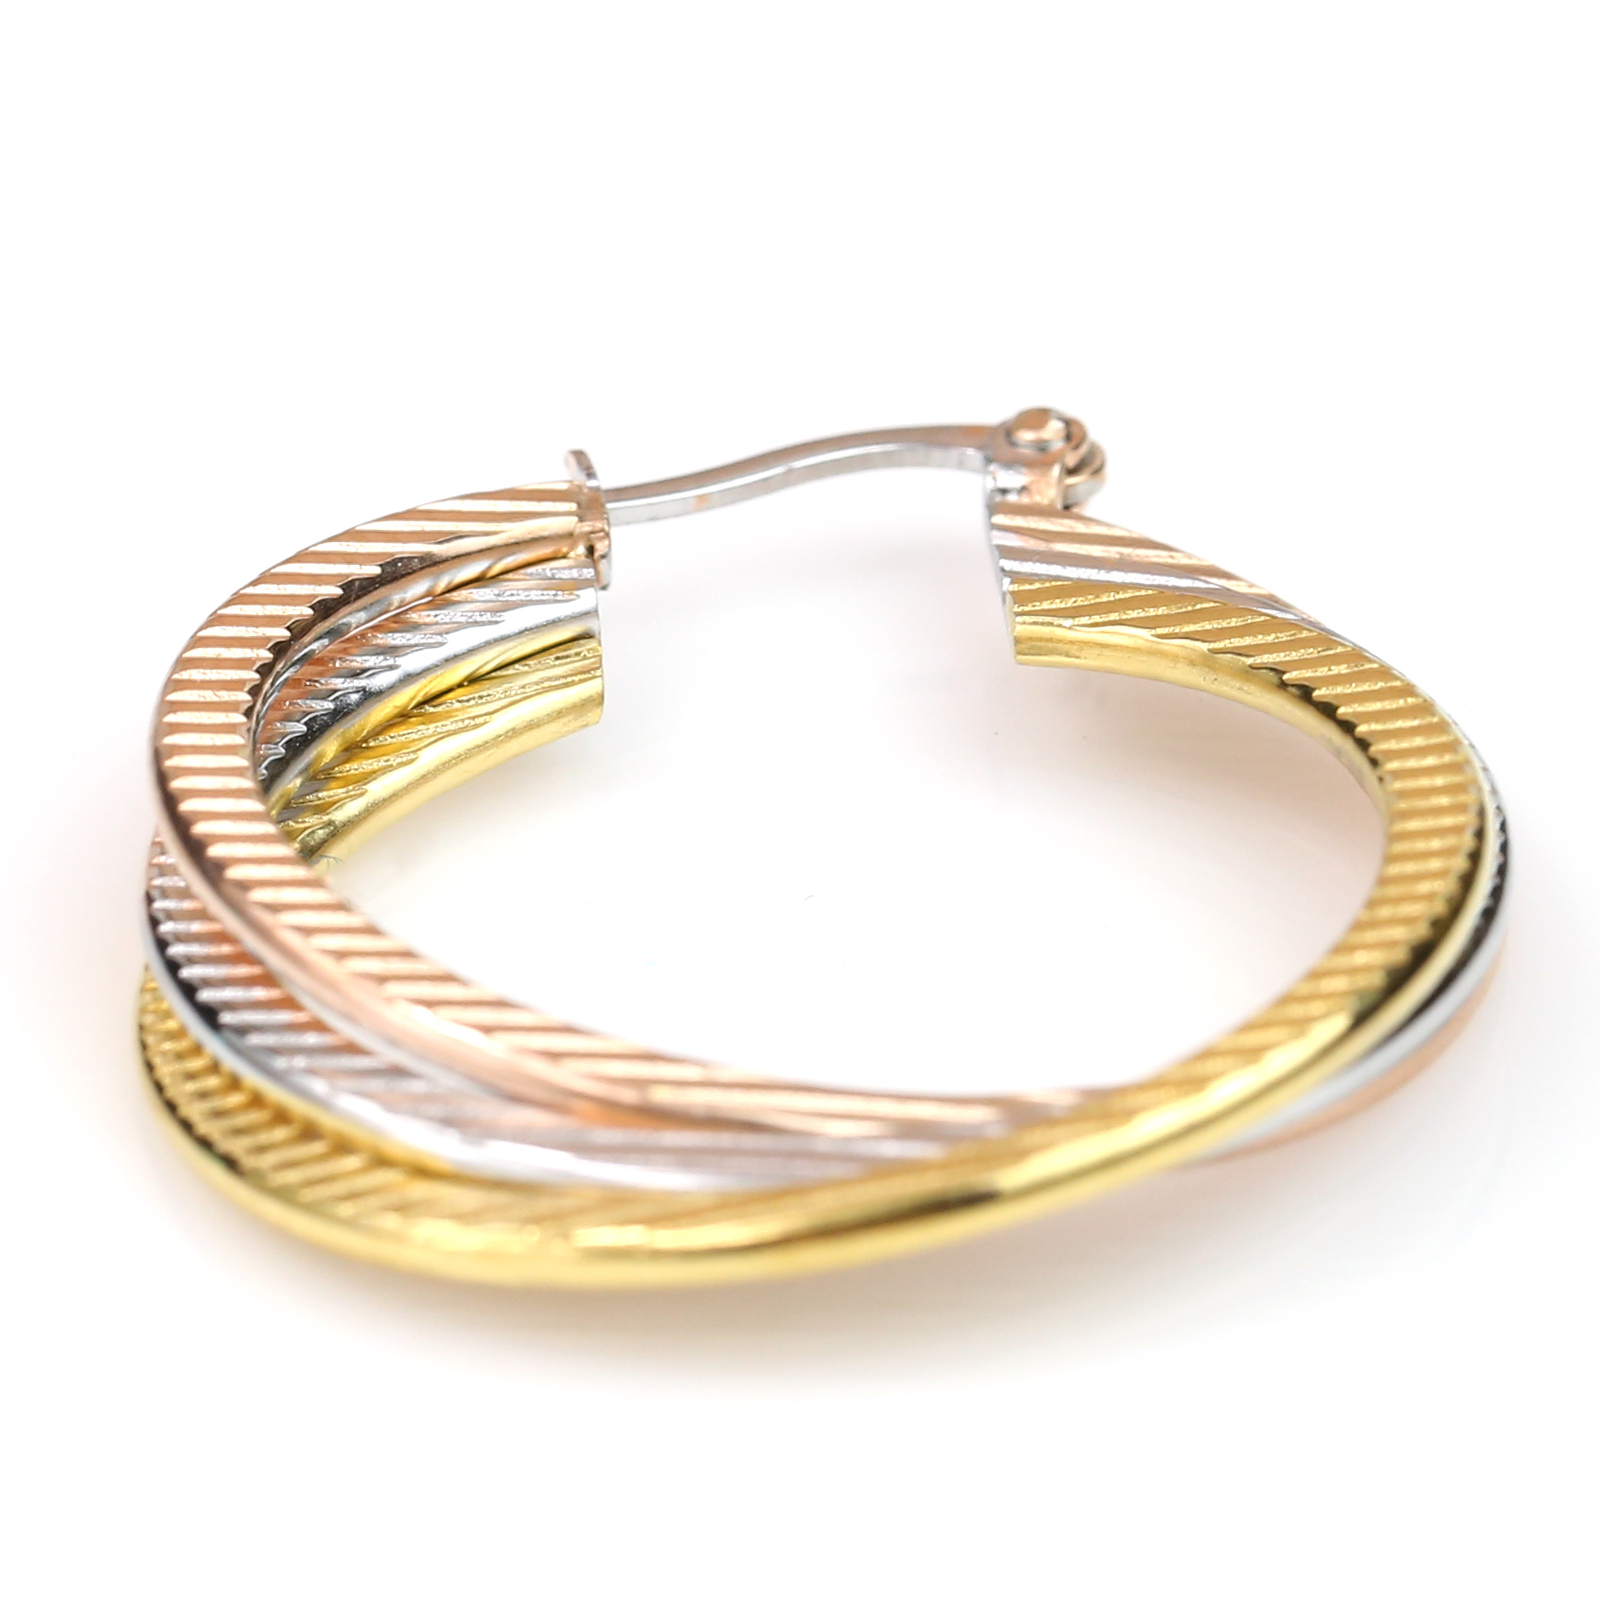 Twisted Tri-Color Silver, Gold & Rose Tone Hoop Earrings-United Elegance